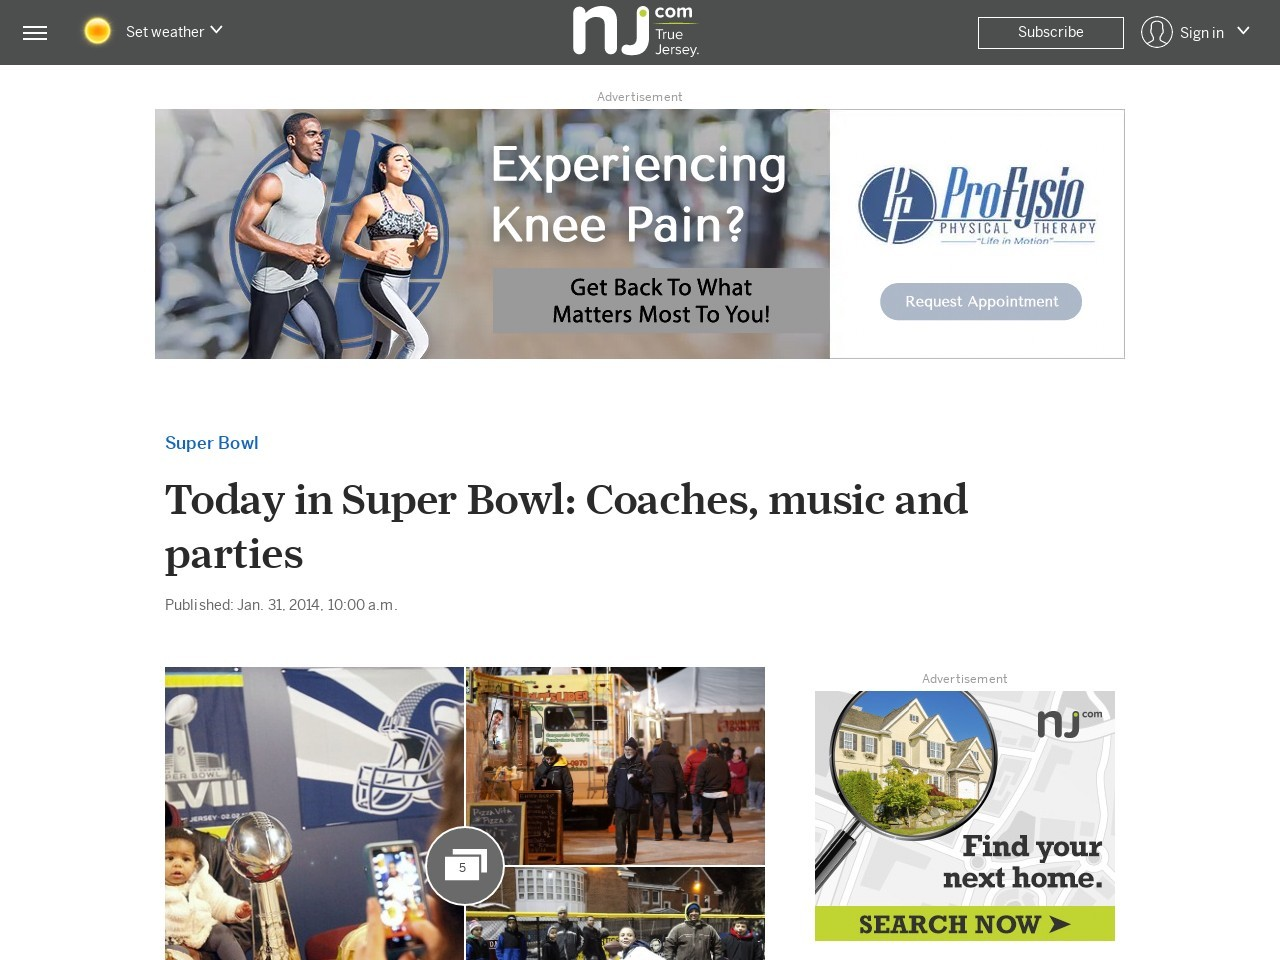 Today in Super Bowl: Coaches, music and parties